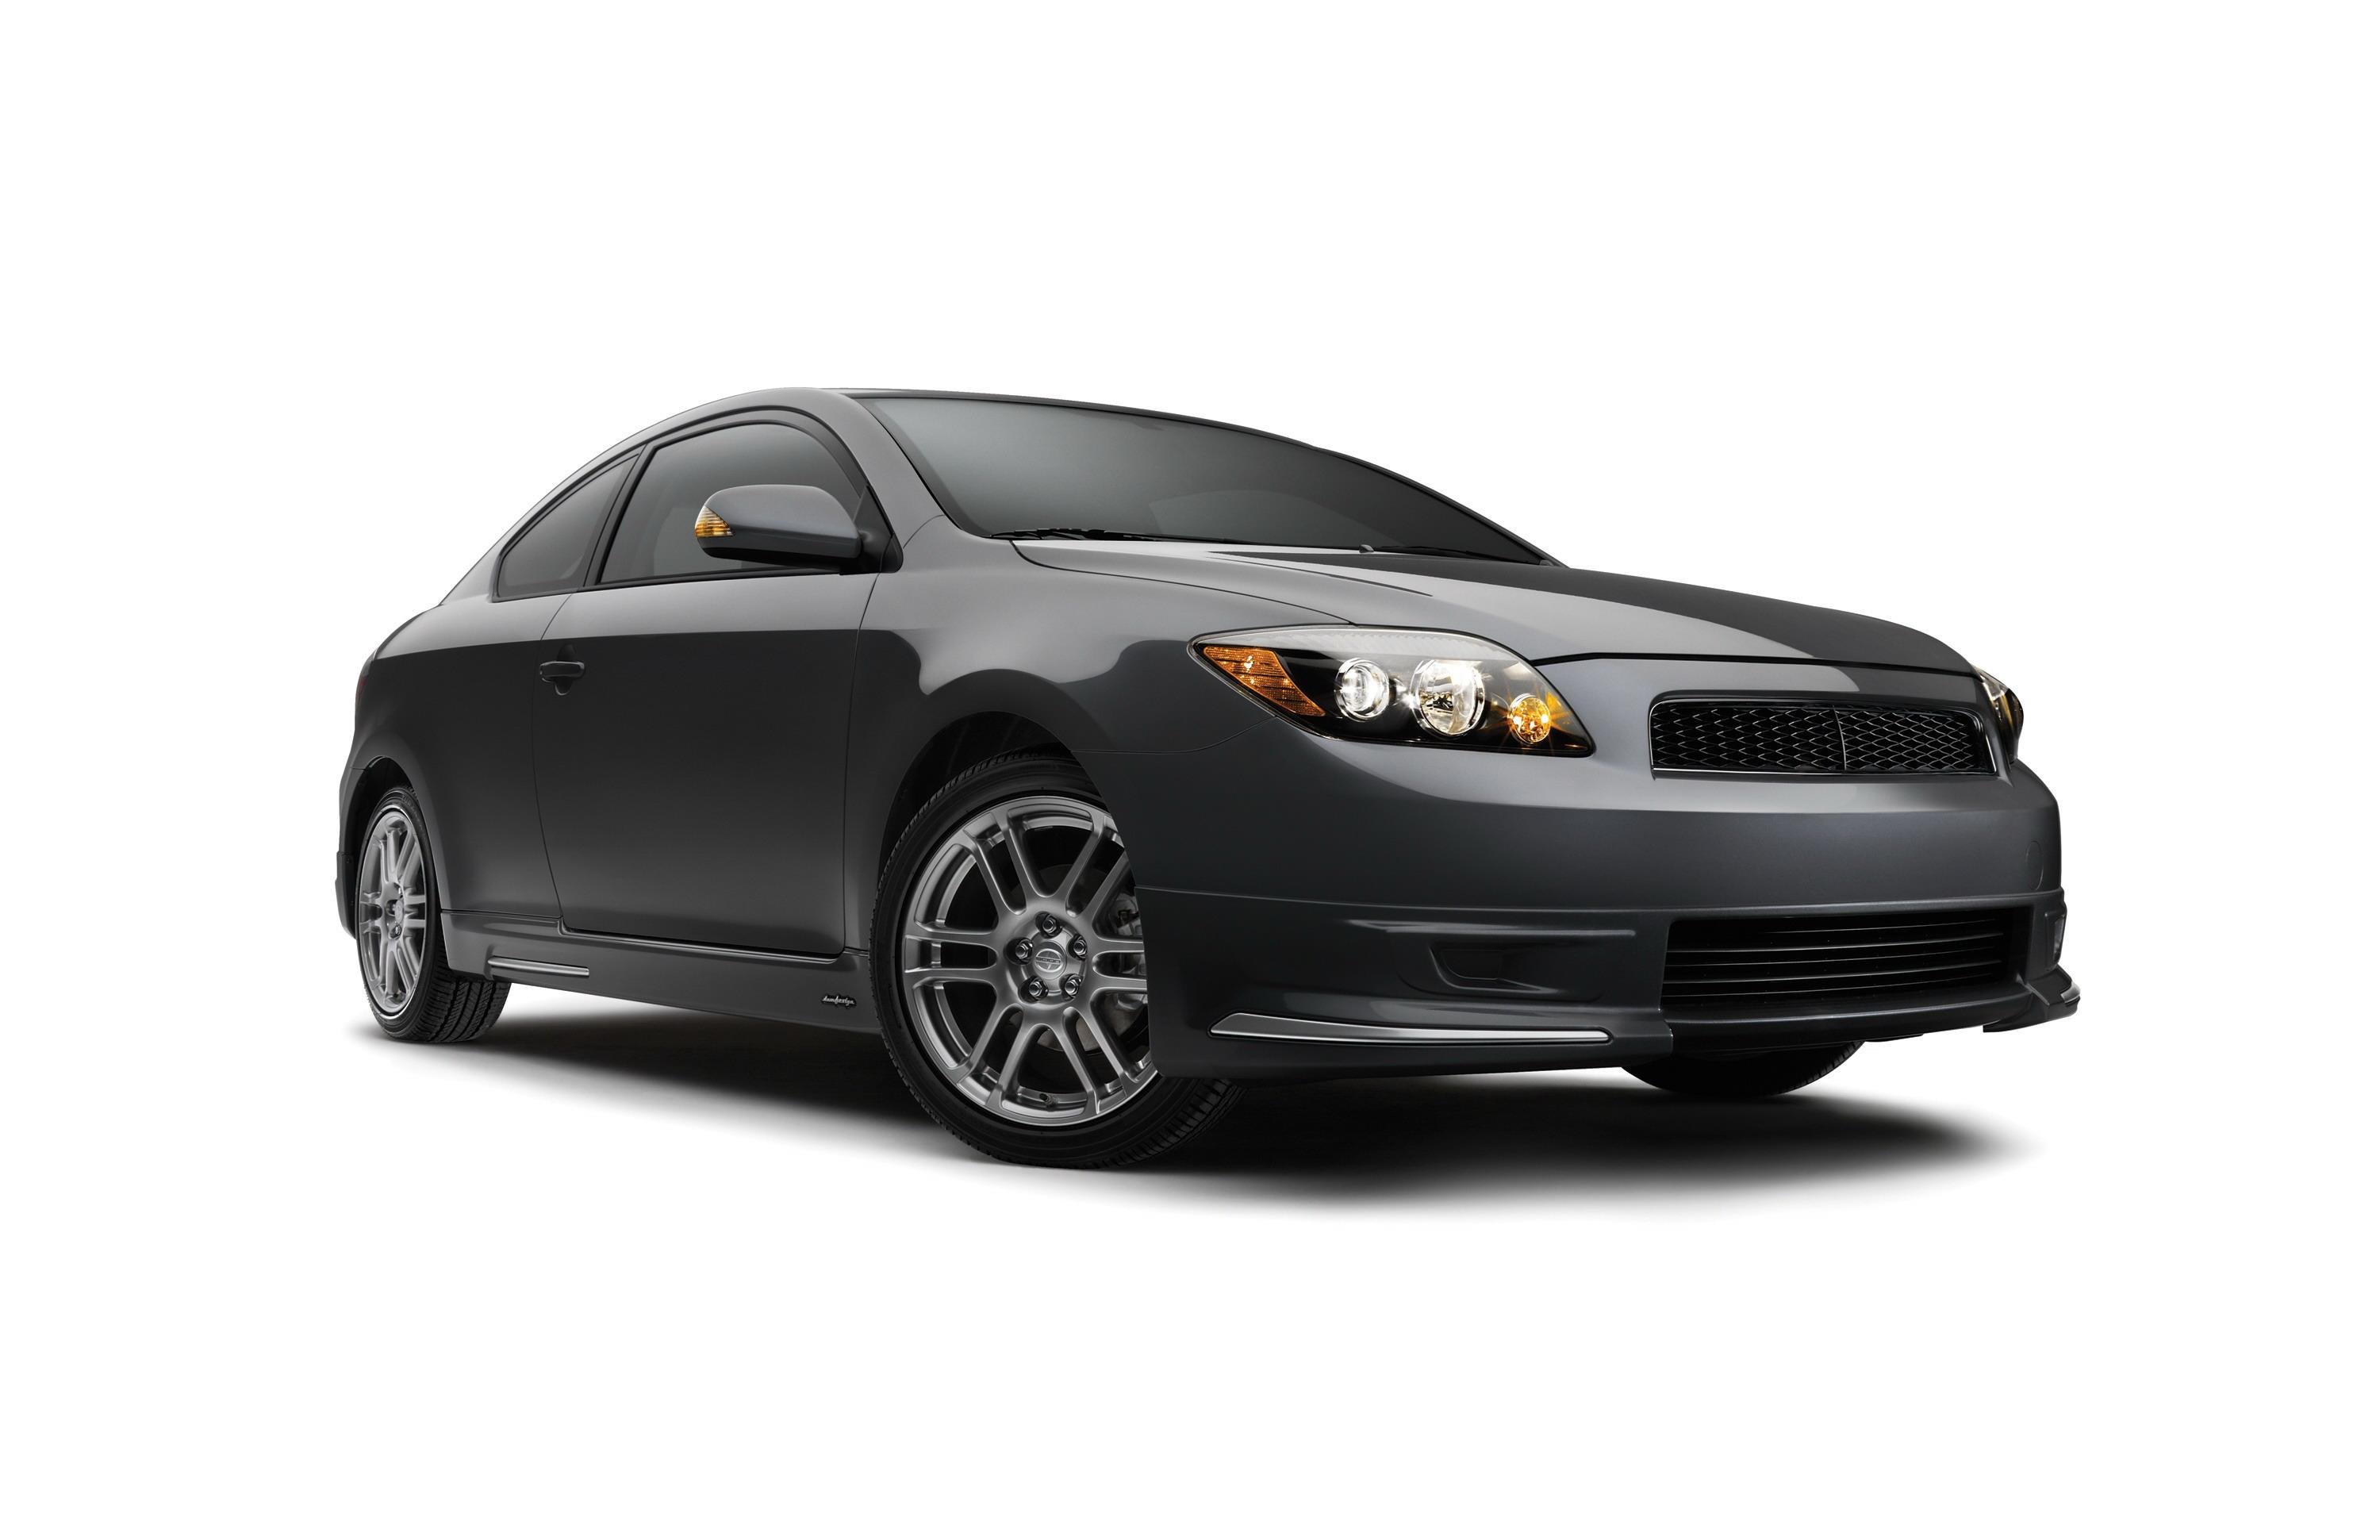 2008 Scion Tc Release Series 4 0 Pricing Announced News